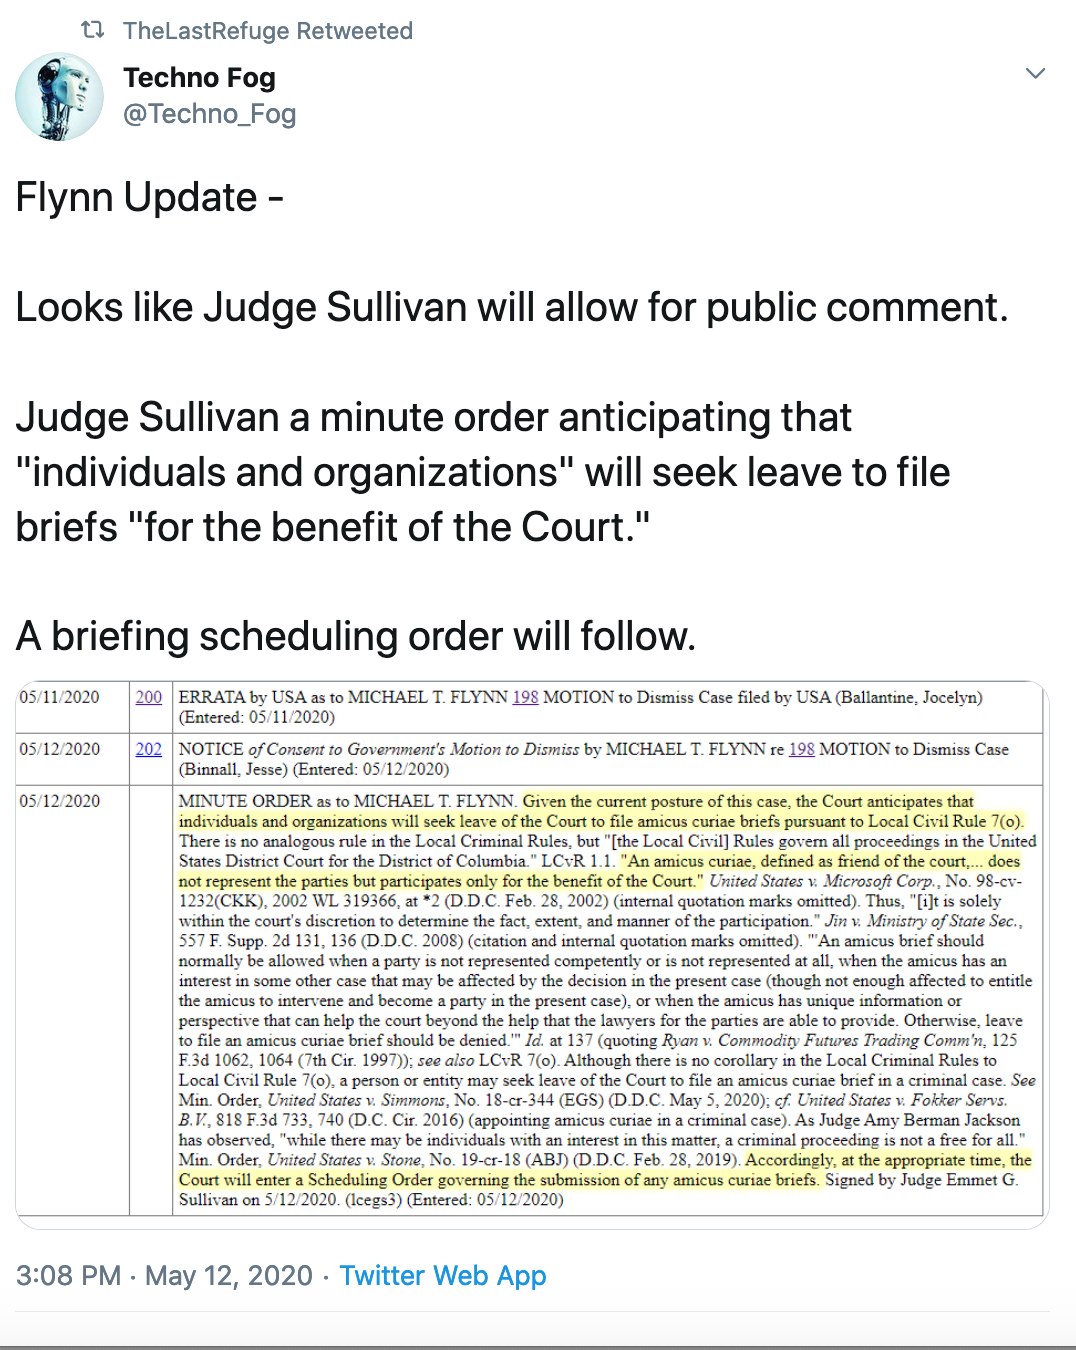 QAnon 12 May 2020 - Flynn Update